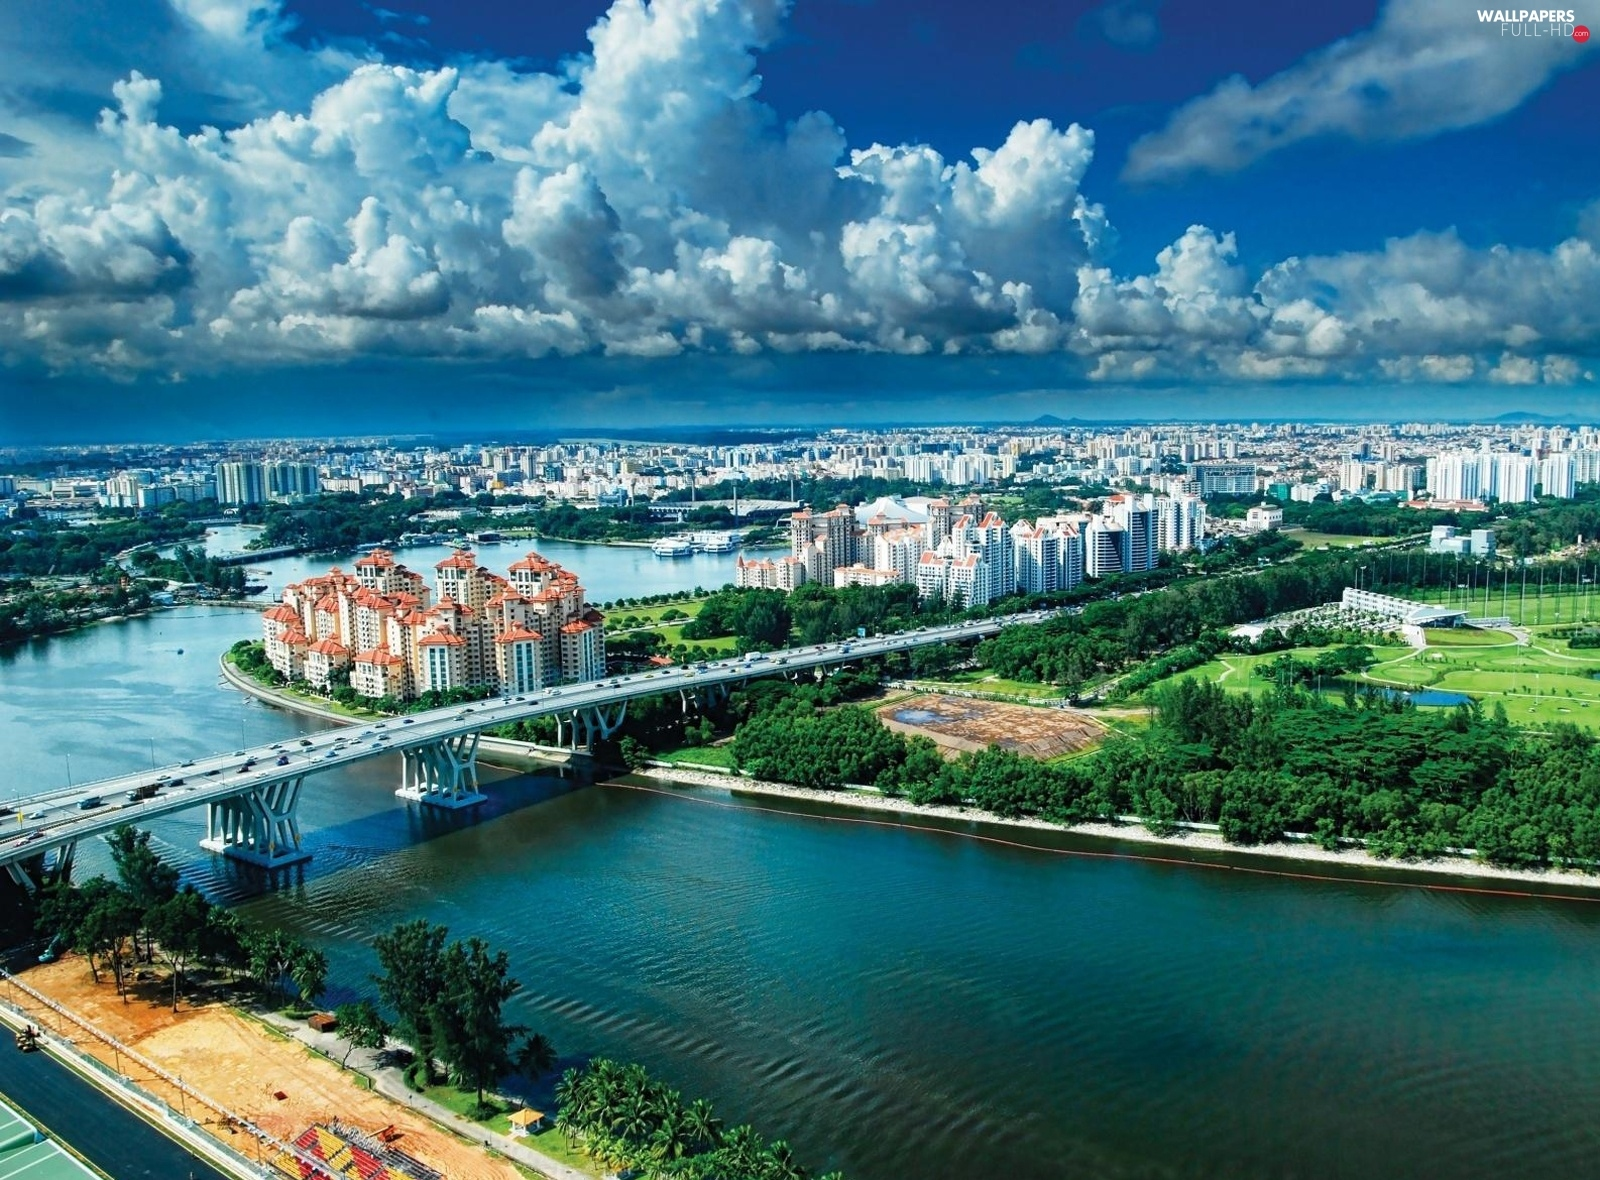 panorama, bridge, Singapur, town, River